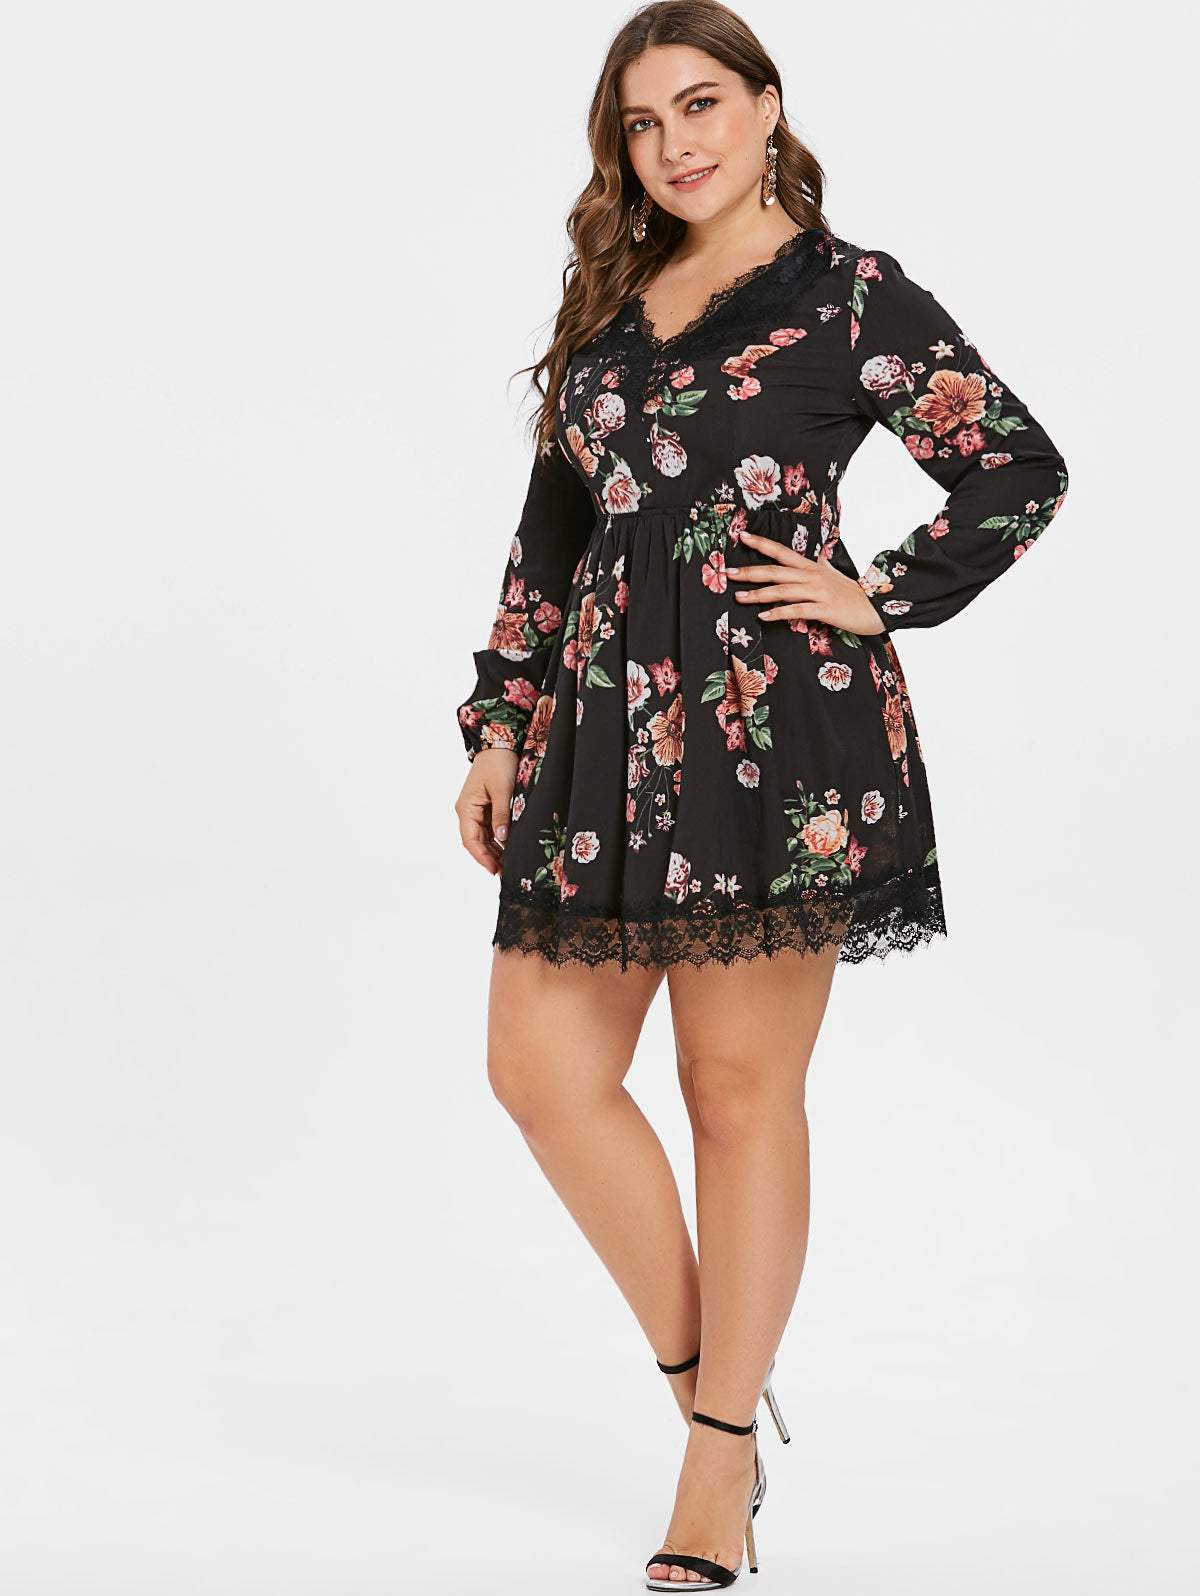 0ee472b1ab2fe Wipalo Plus Size Lace Up Floral Print Mini Dress Casual V Neck A-Line Lace  Trim Dress Oversized Women Fall Clothes 5XL Vestidos